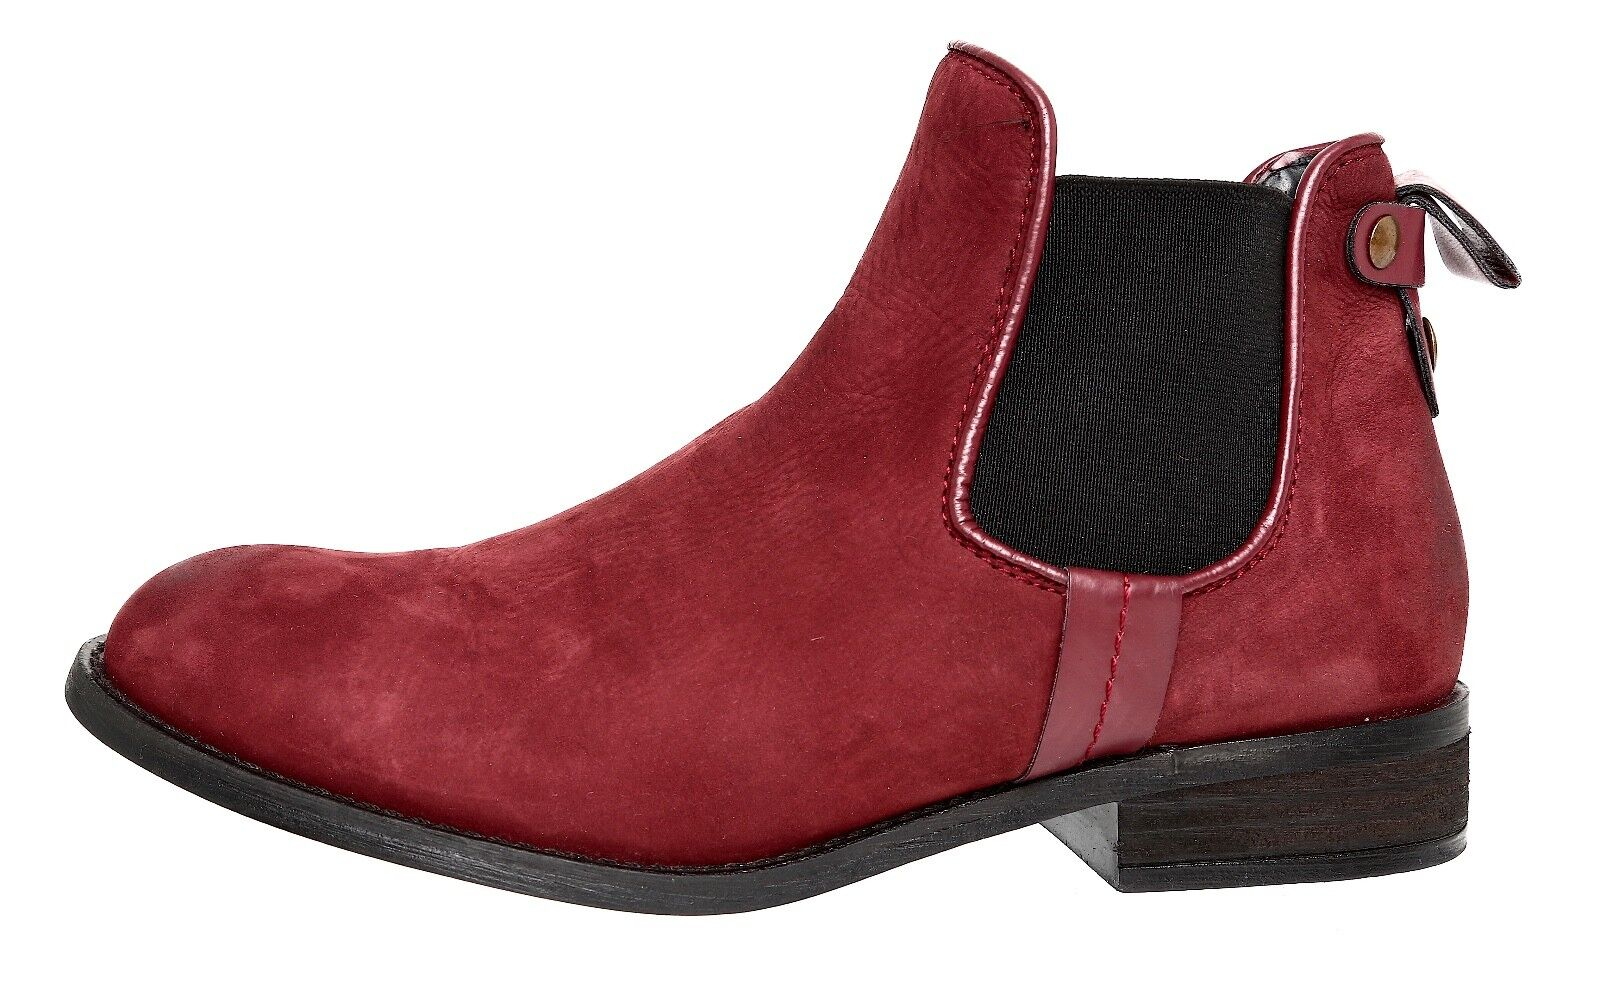 Steve Madden Gilte Chelsea Leather Boot Burgundy Women Sz 7.5 M 4066